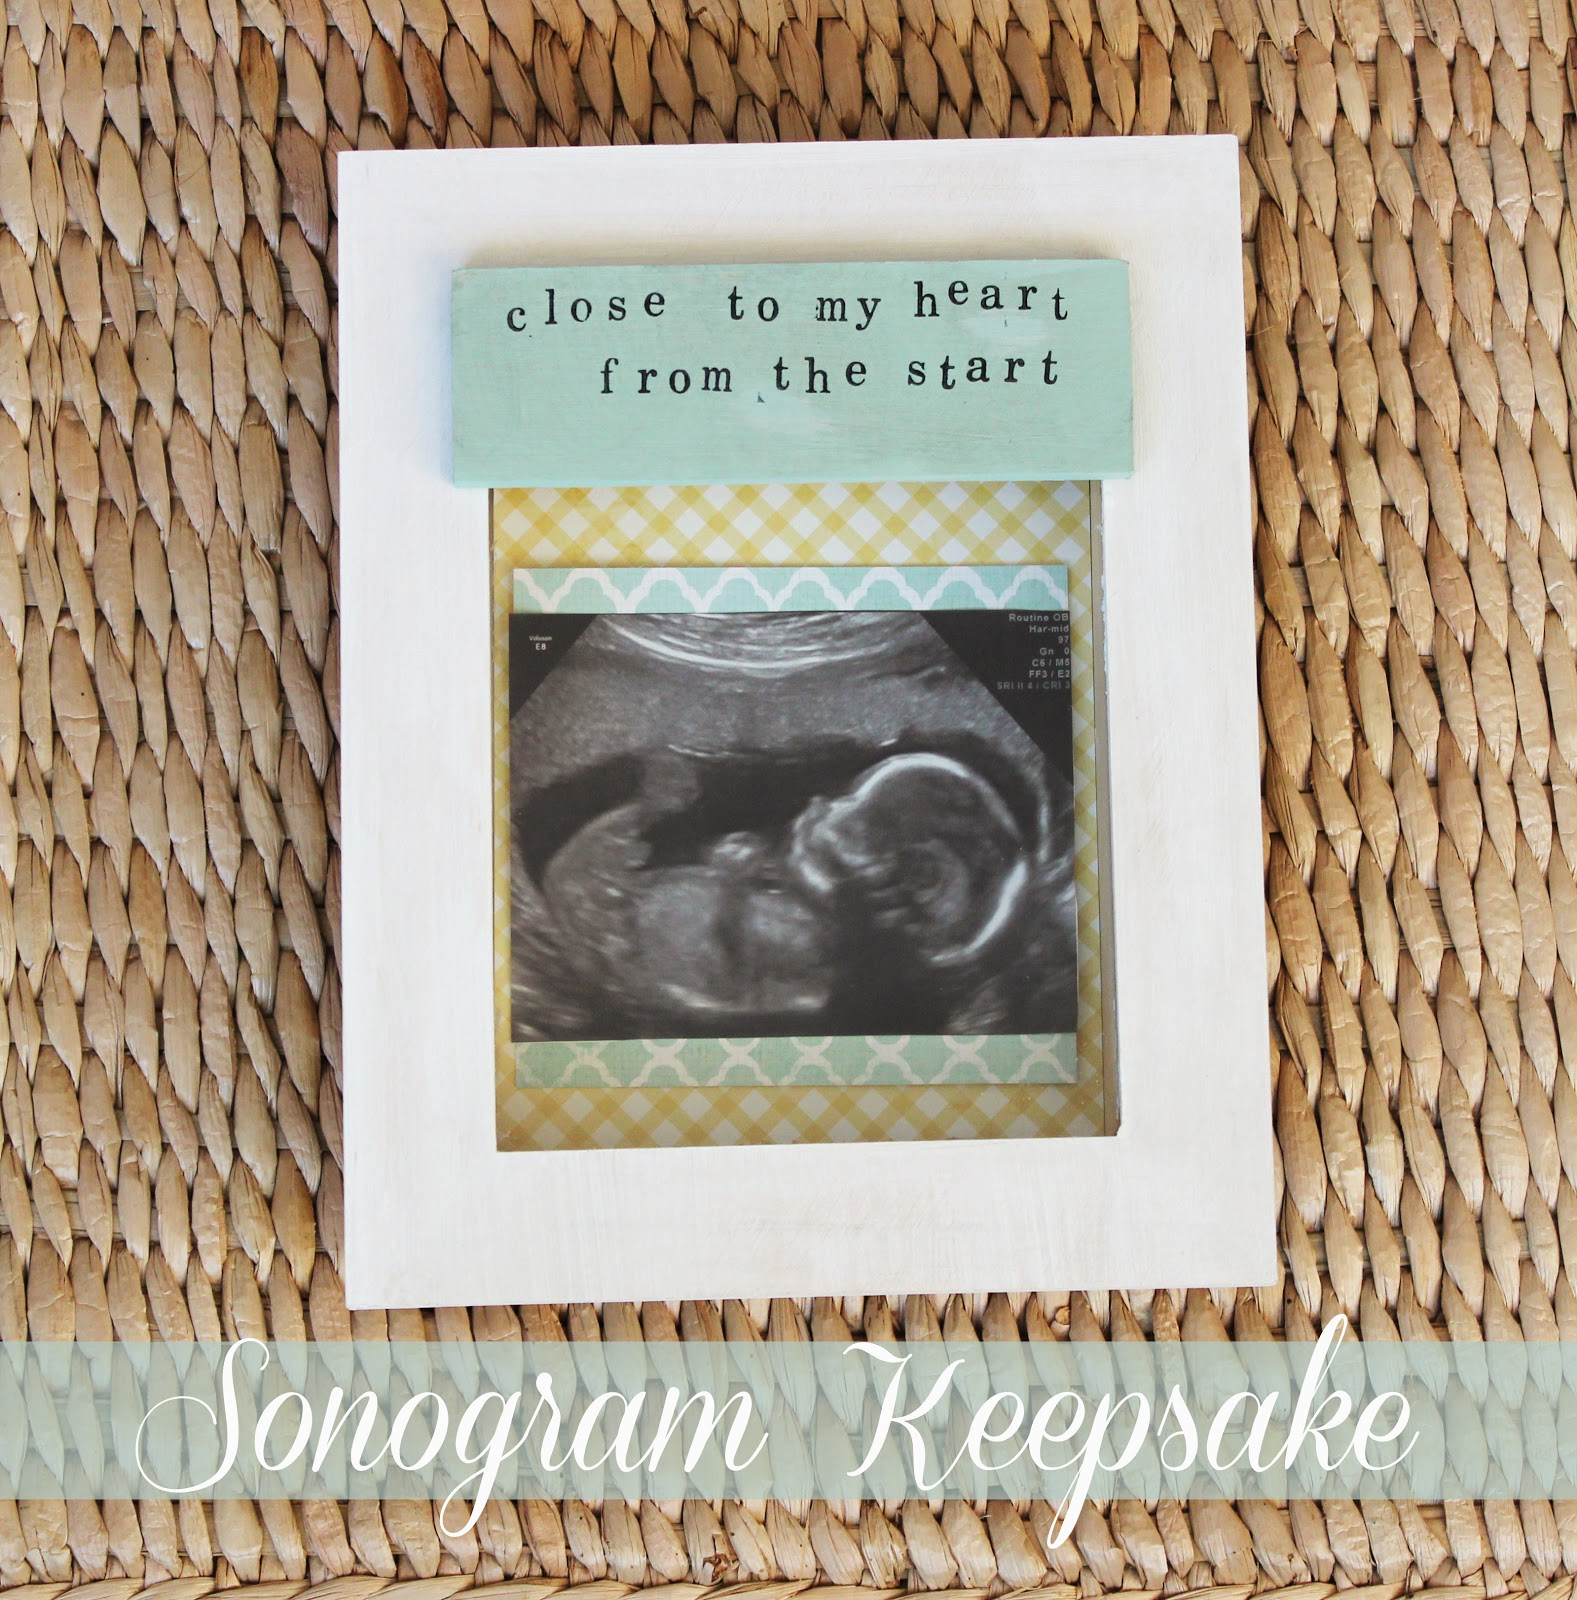 DIY-sonogram-keepsake-shadow-box